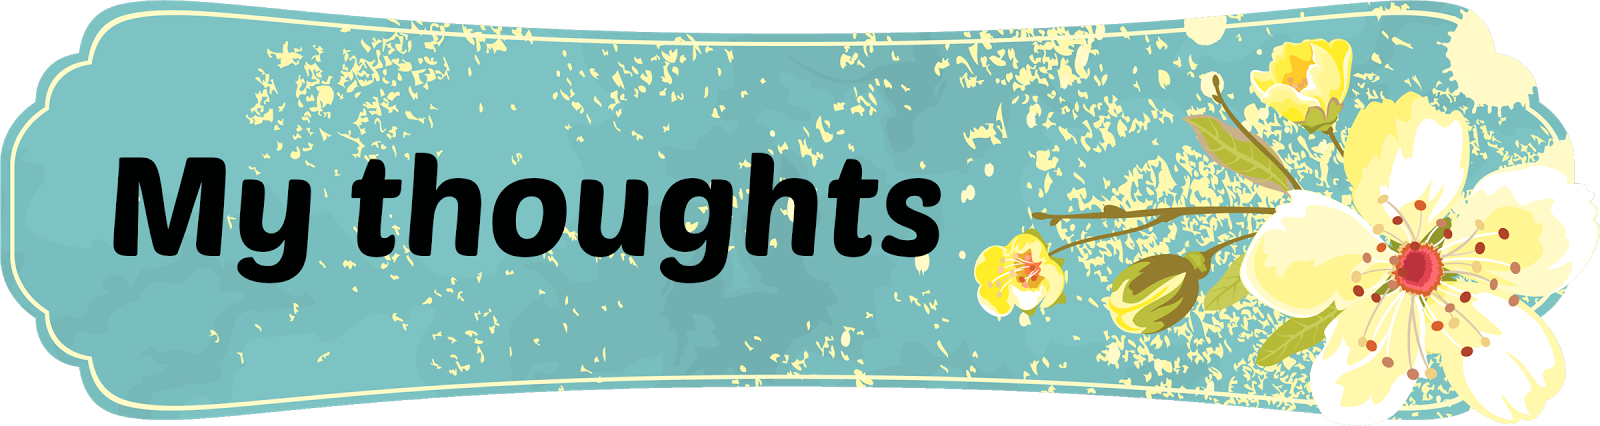 Banner:  My thoughts